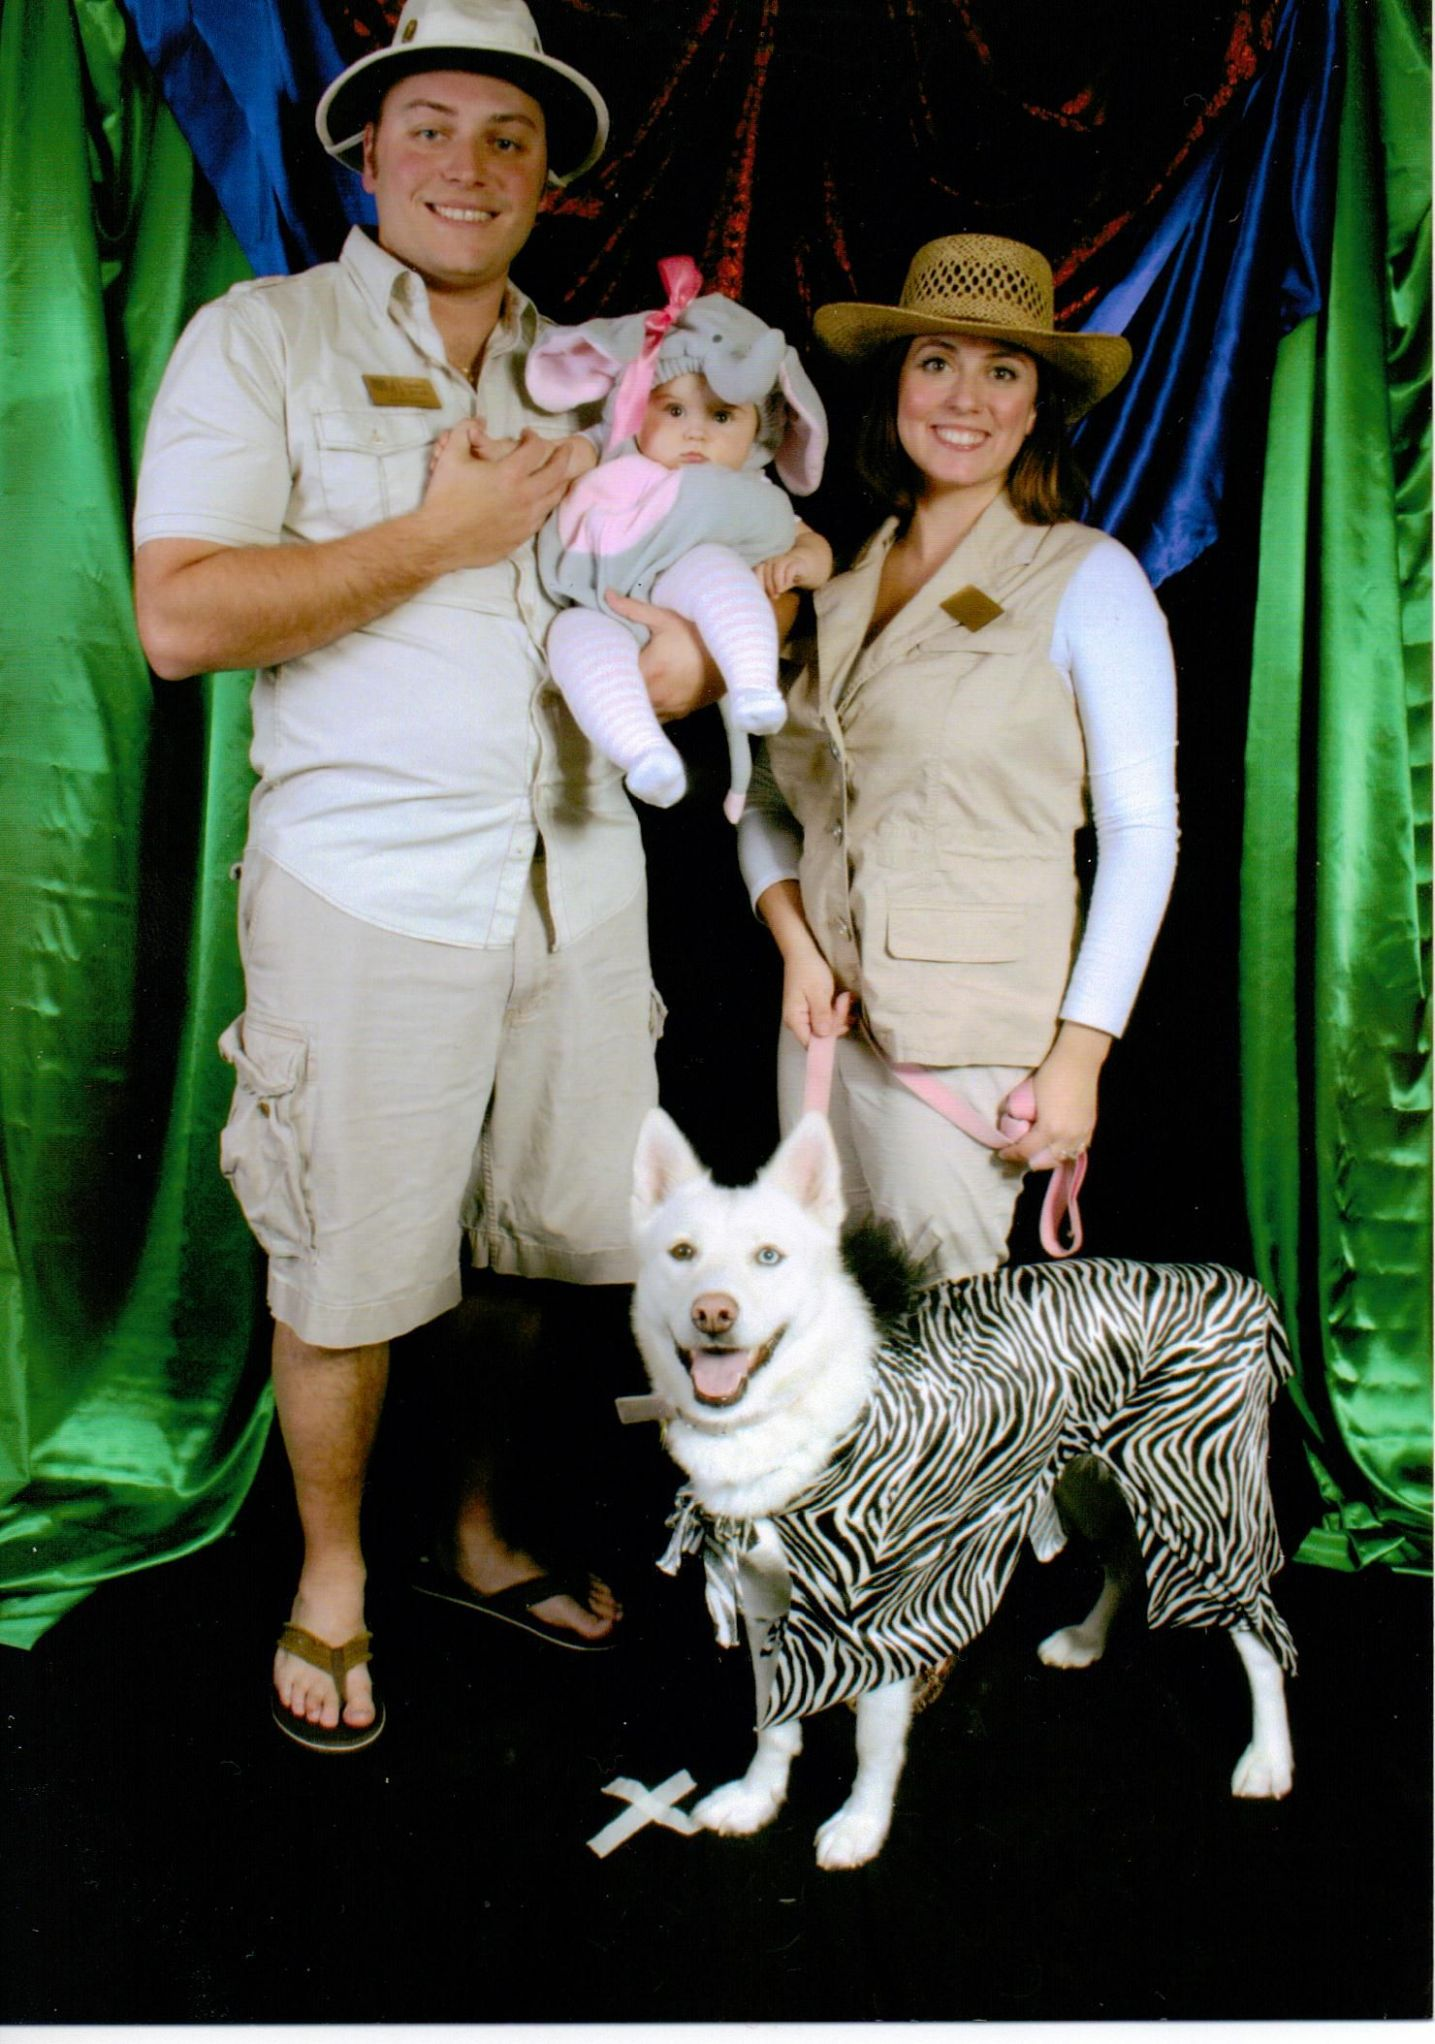 Family Halloween costume with dog - zoo keepers or safari (With ...